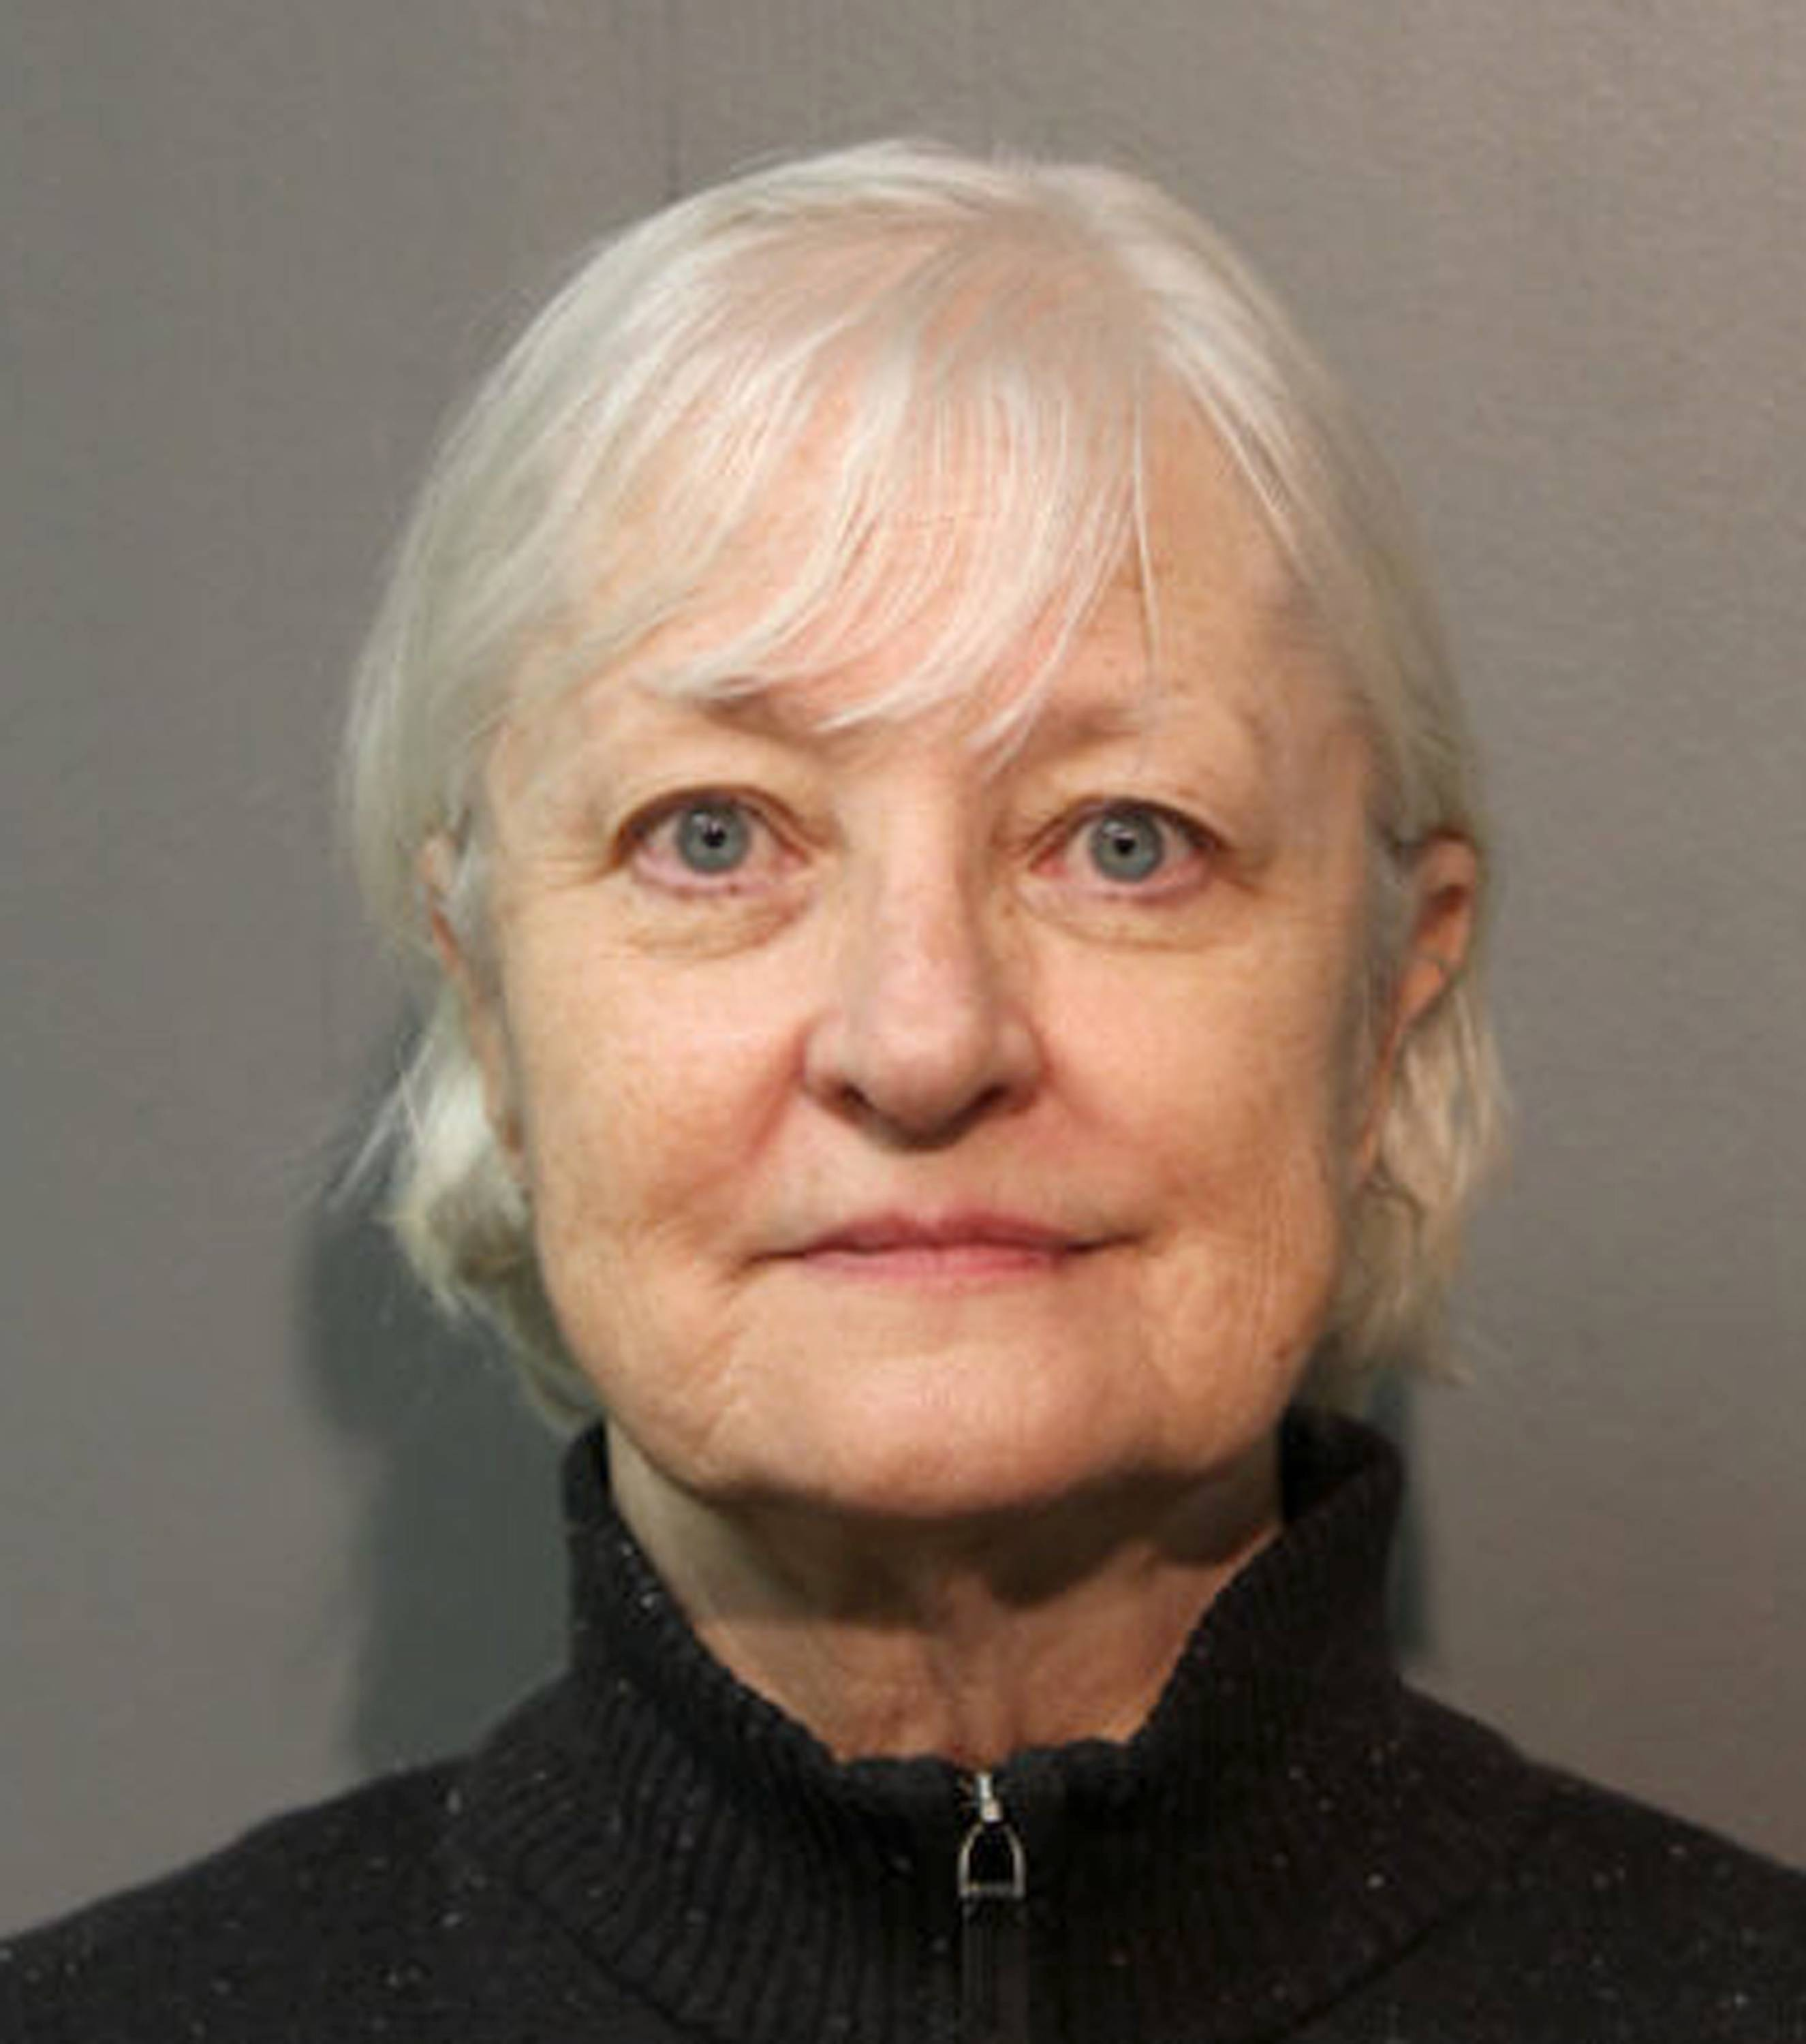 Marilyn Hartman, a Grayslake woman with a long history of boarding plans without a ticket, was arrested again early Sunday at O'Hare International Airport.